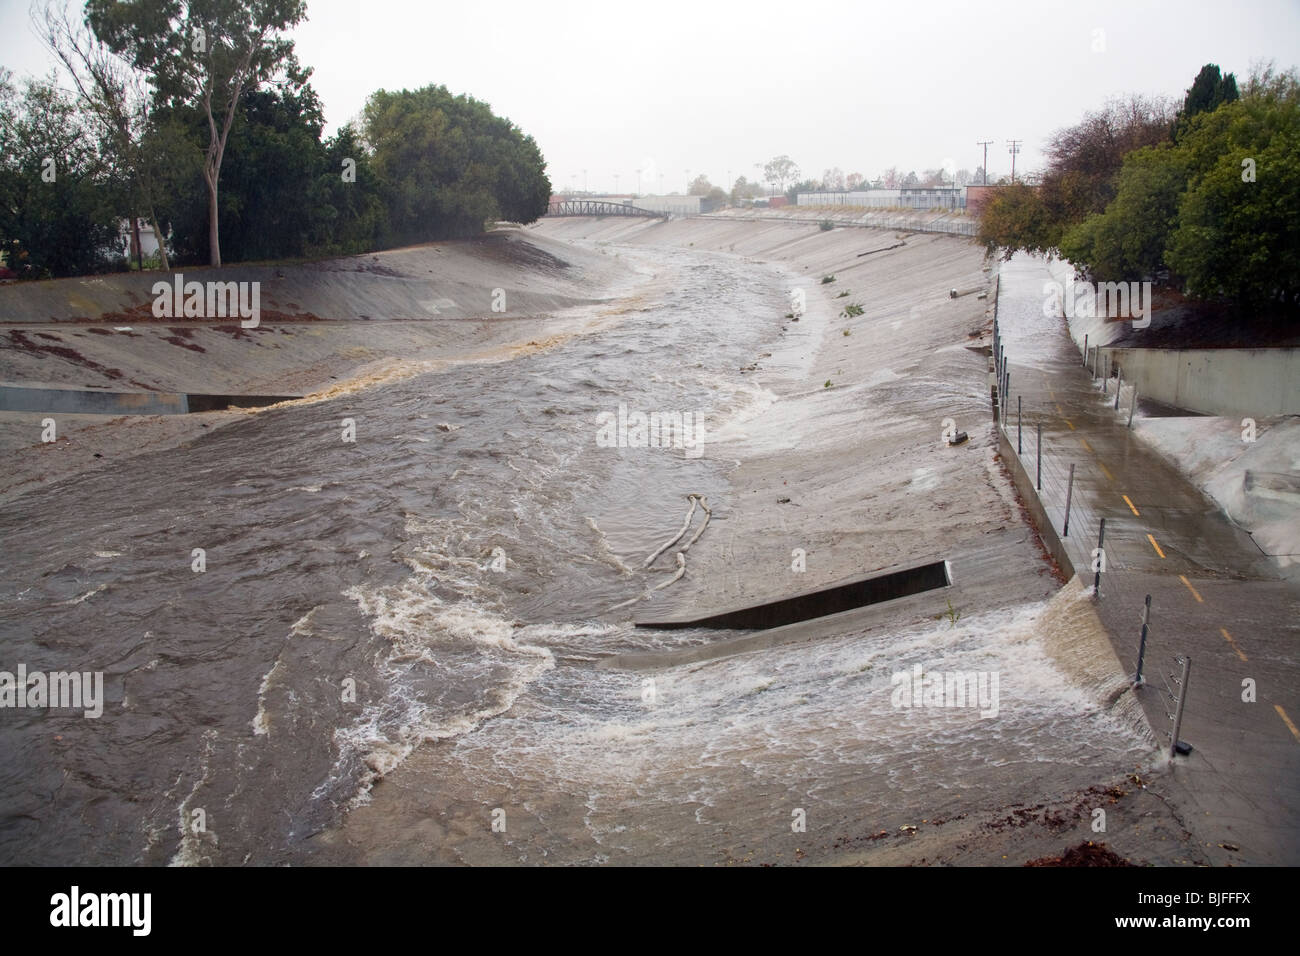 Rain water empties from Storm Pipes into Ballona Creek, a nine-mile waterway that drains the Los Angeles basin. - Stock Image